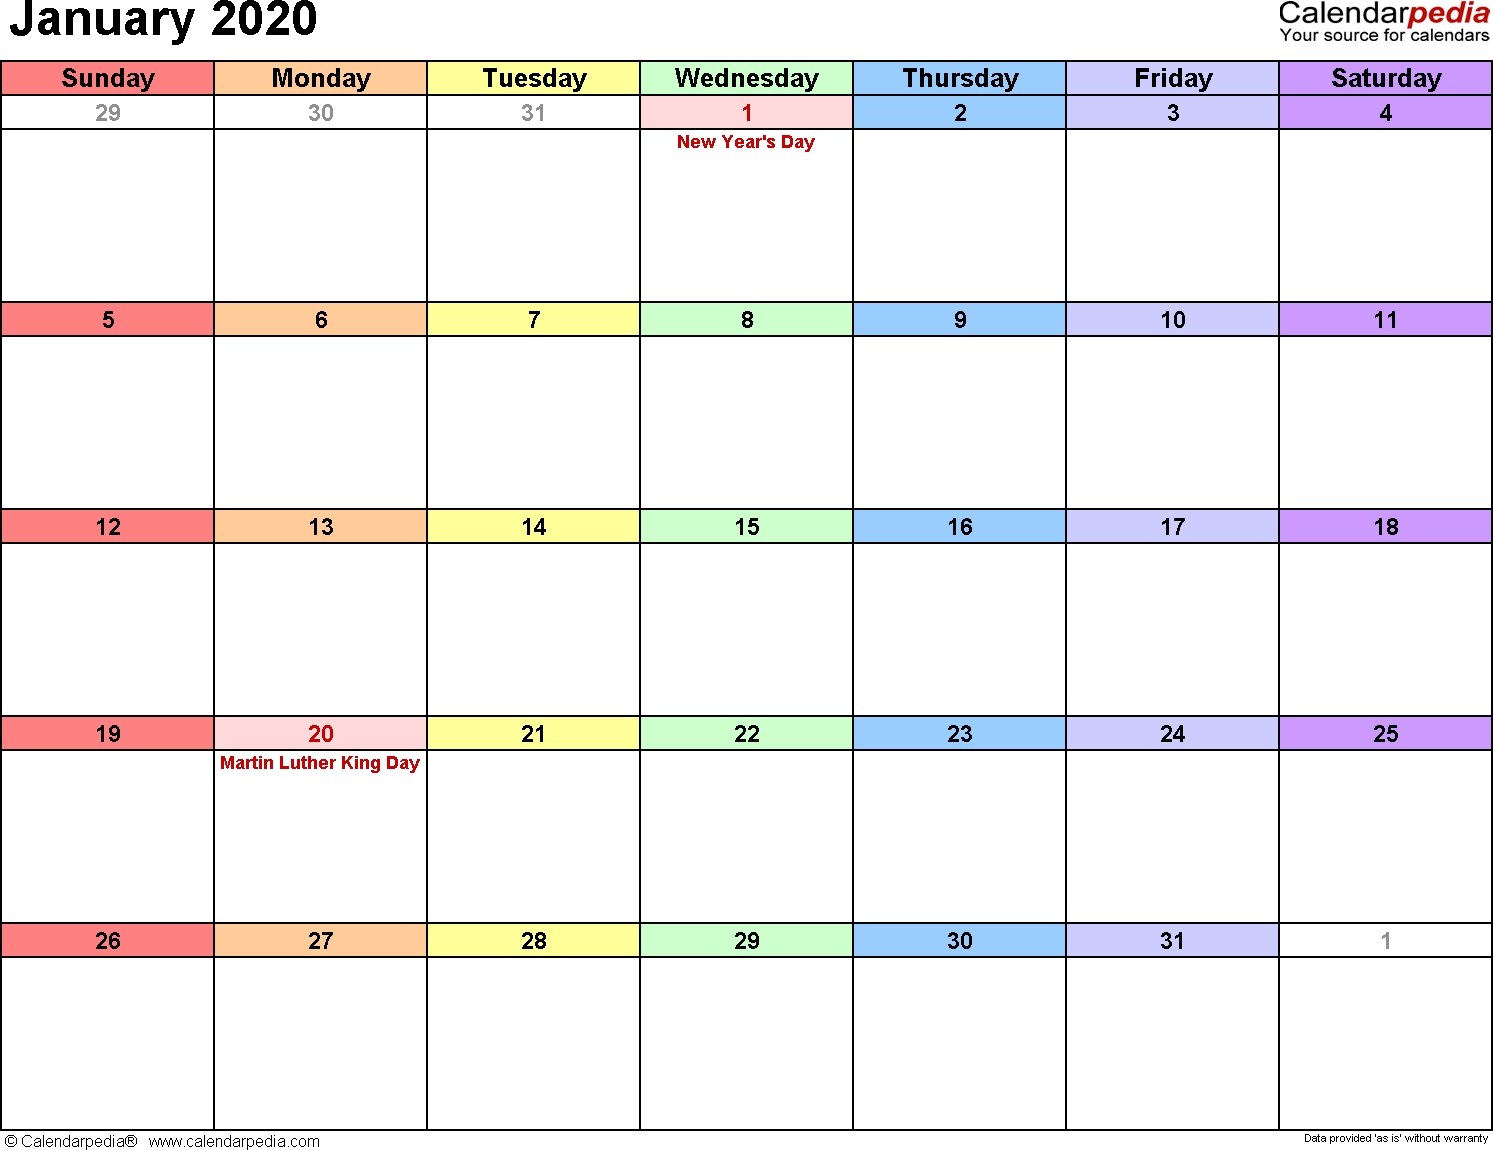 January 2020 Calendars For Word, Excel & Pdf-January 2020 Calendar Microsoft Word